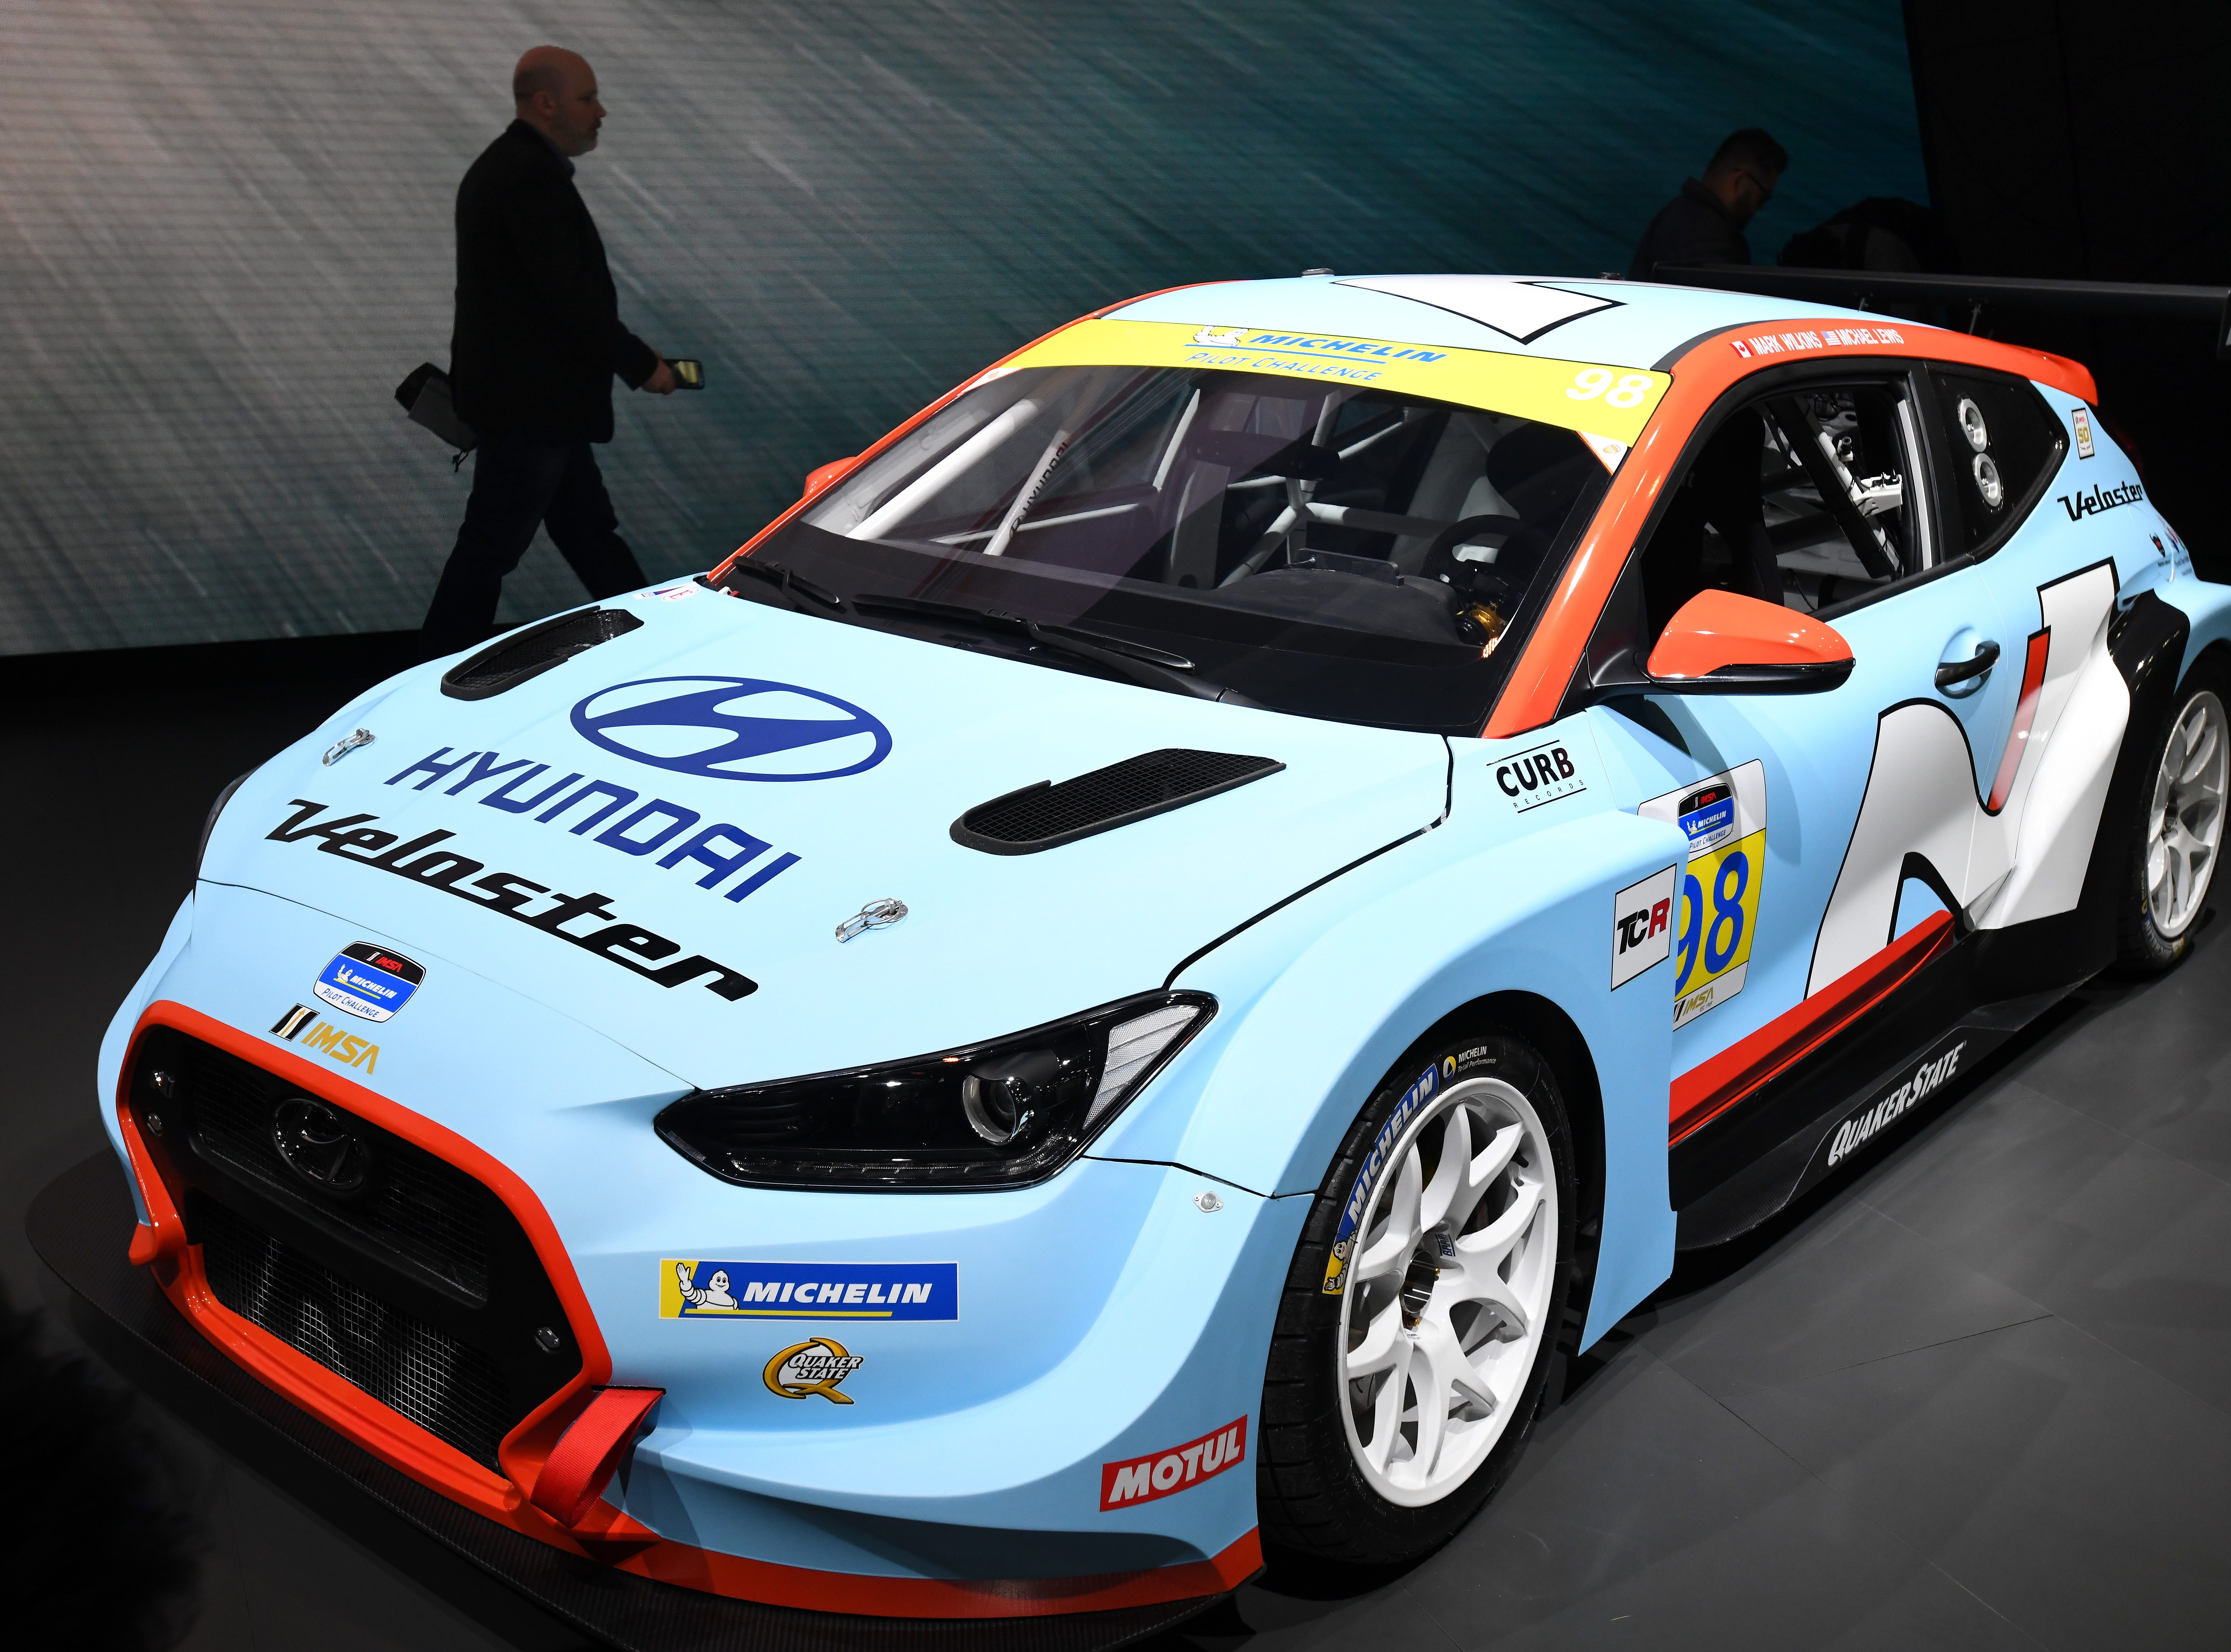 The Hyundai Veloster N TCR will be operated by Bryan Herta Autosport next week at the 2019 International Motor Sports Association Michelin Pilot Challenge.